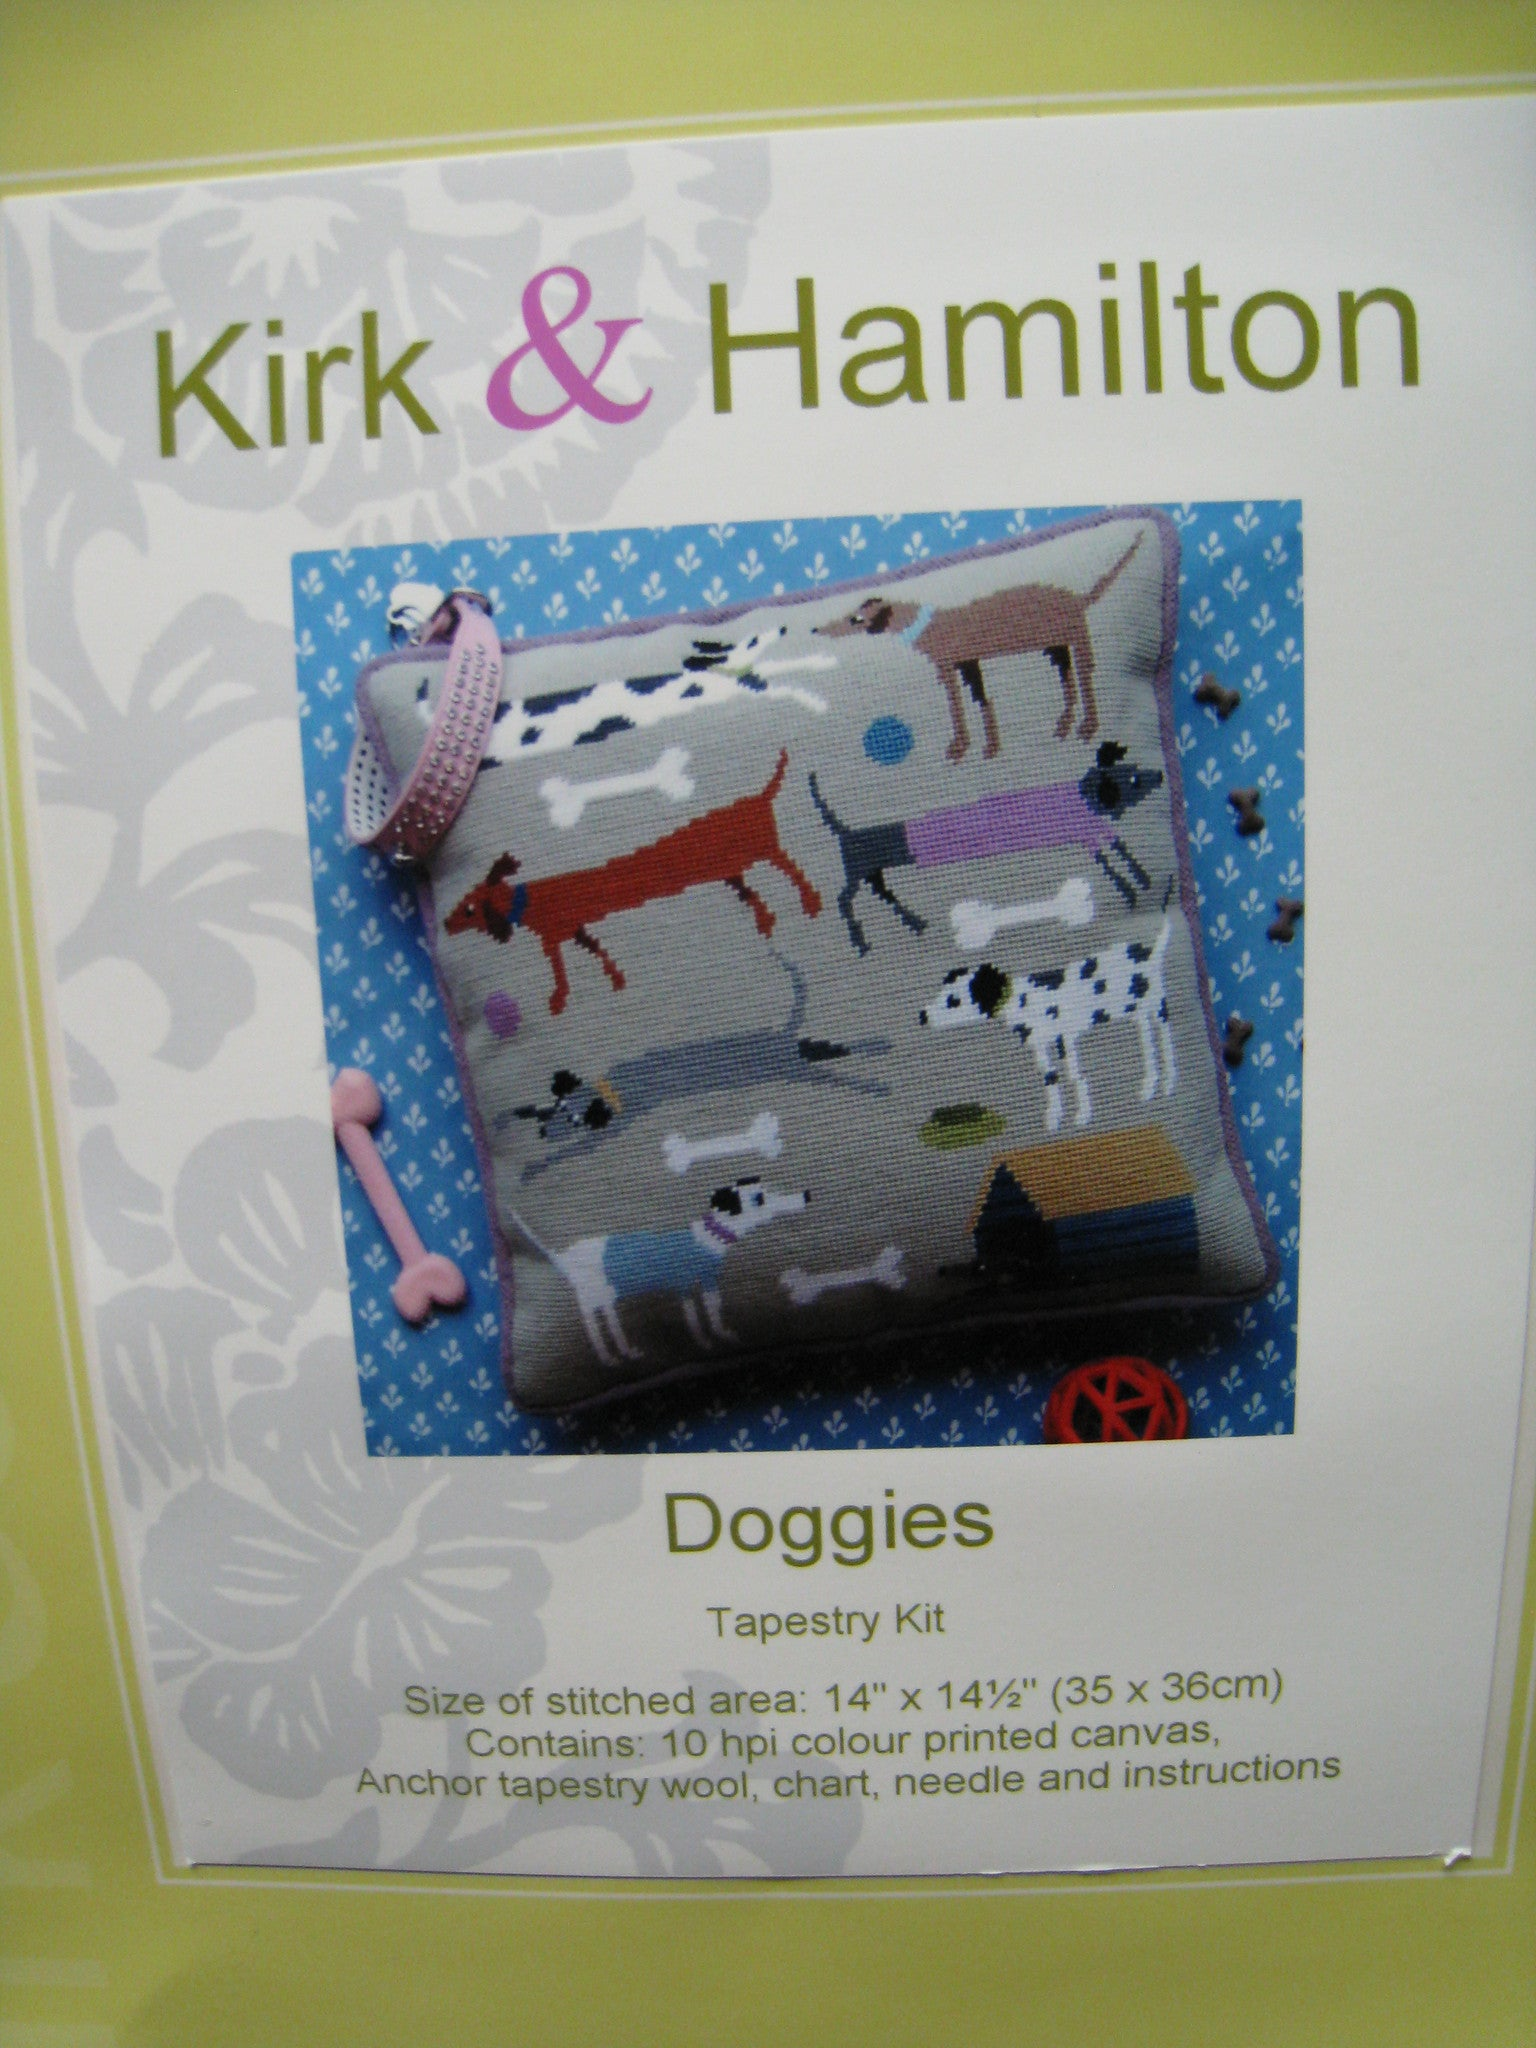 Doggies by Kirk and Hamilton